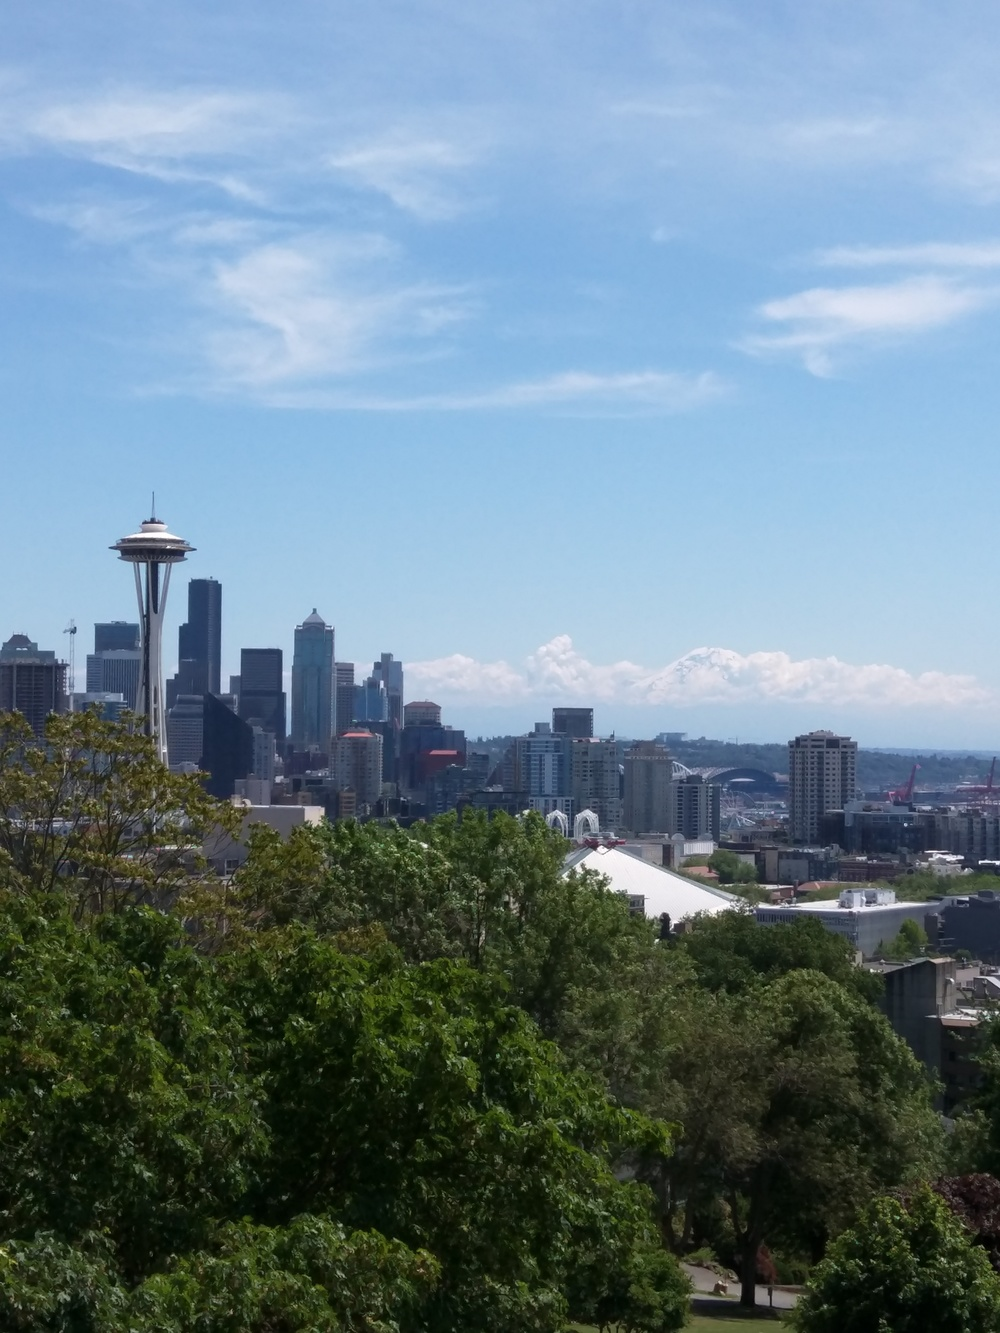 The view from Kerry Park.